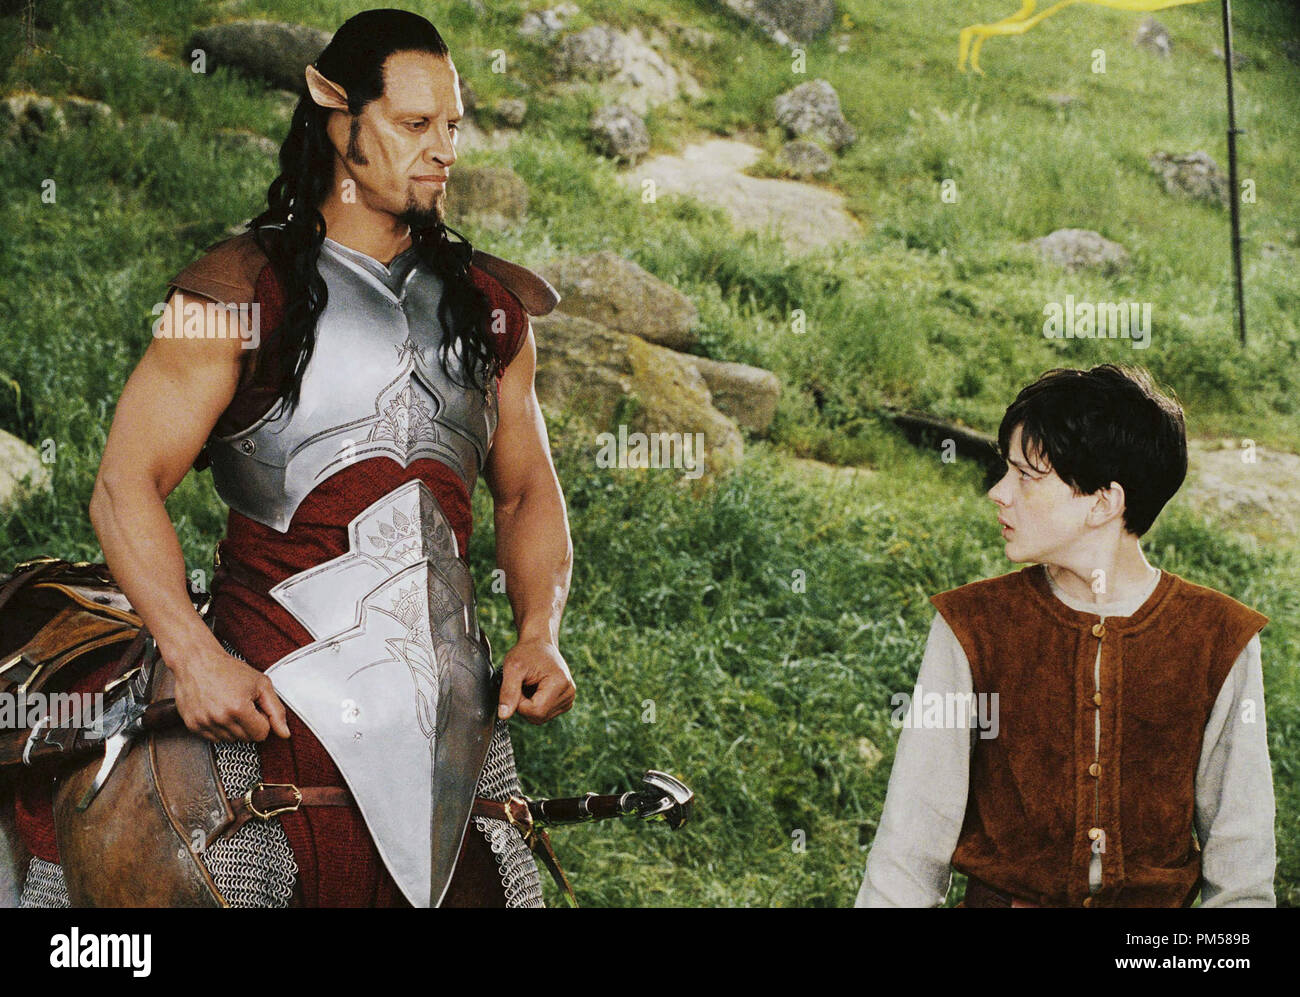 Studio Publicity Still from 'The Chronicles of Narnia: The Lion, the Witch and the Wardrobe'  Patrick Kake, Skandar Keynes © 2005 Walt Disney Pictures Photo by Phil Bray      File Reference # 307361582THA  For Editorial Use Only -  All Rights Reserved - Stock Image